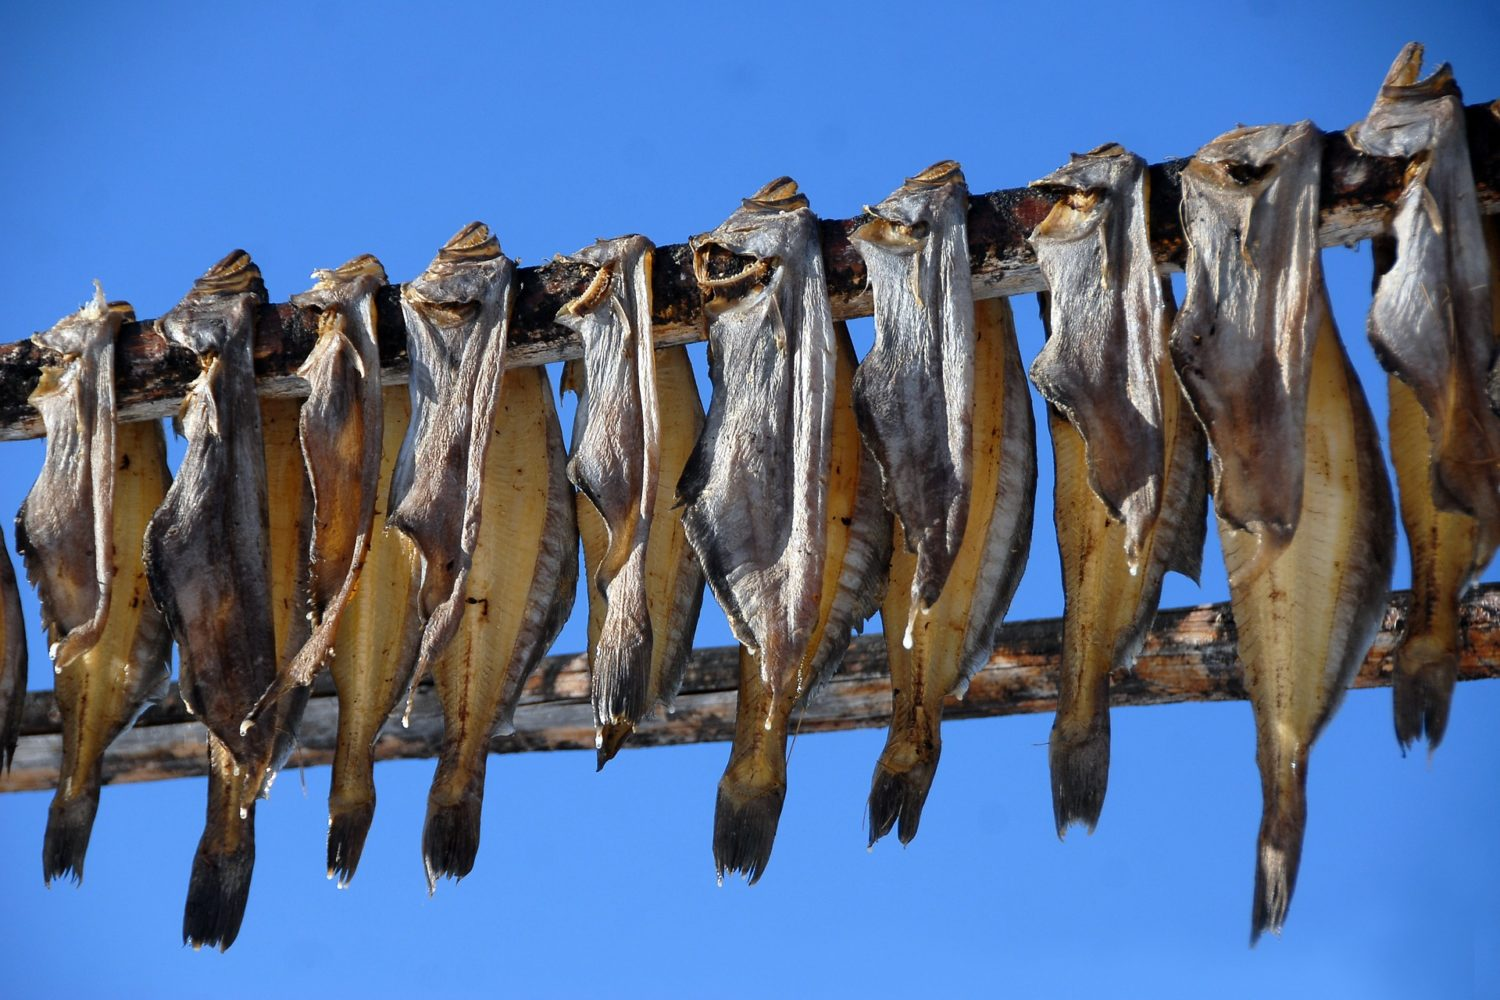 Dorr fish drying is a common site to see in Greenland.